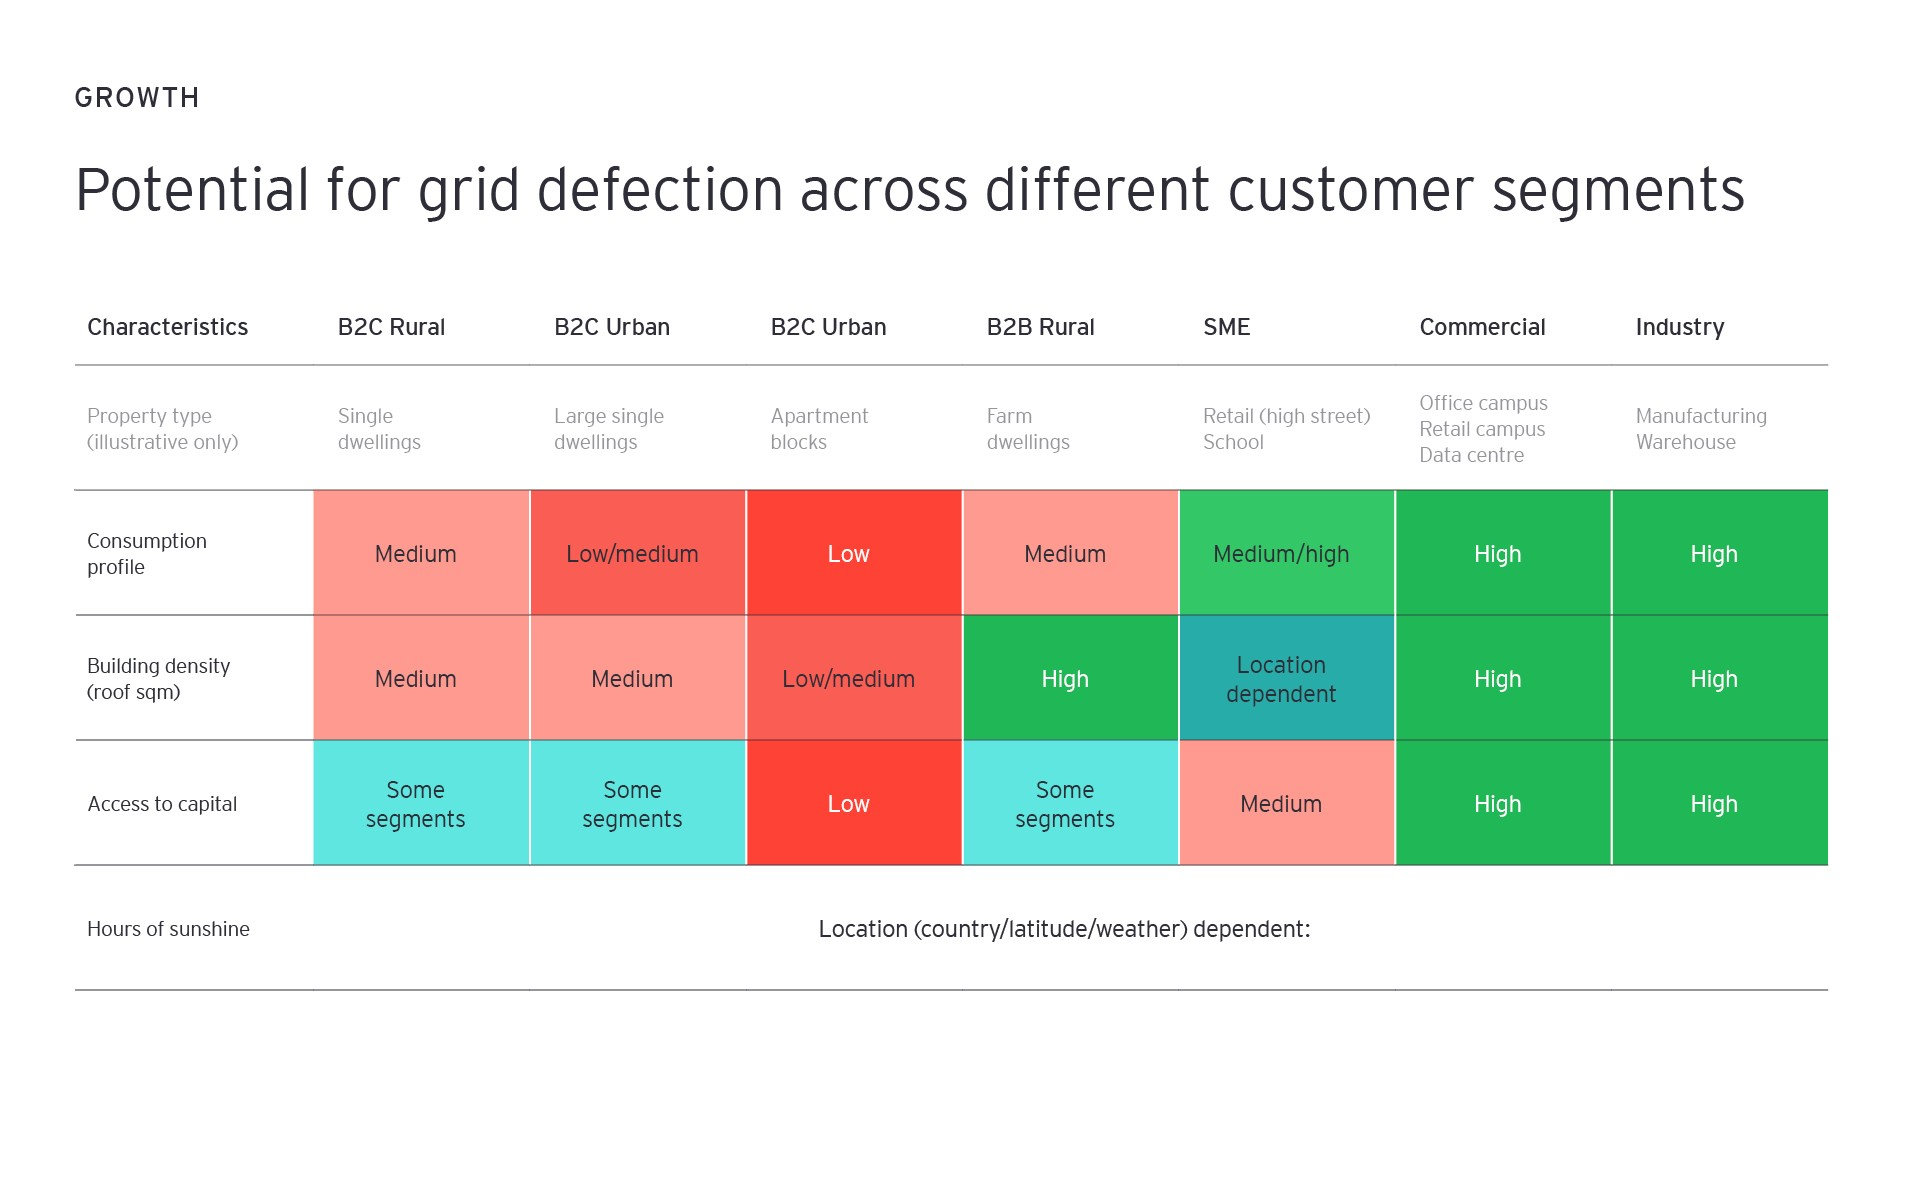 Potential for grid defection across different customer segments